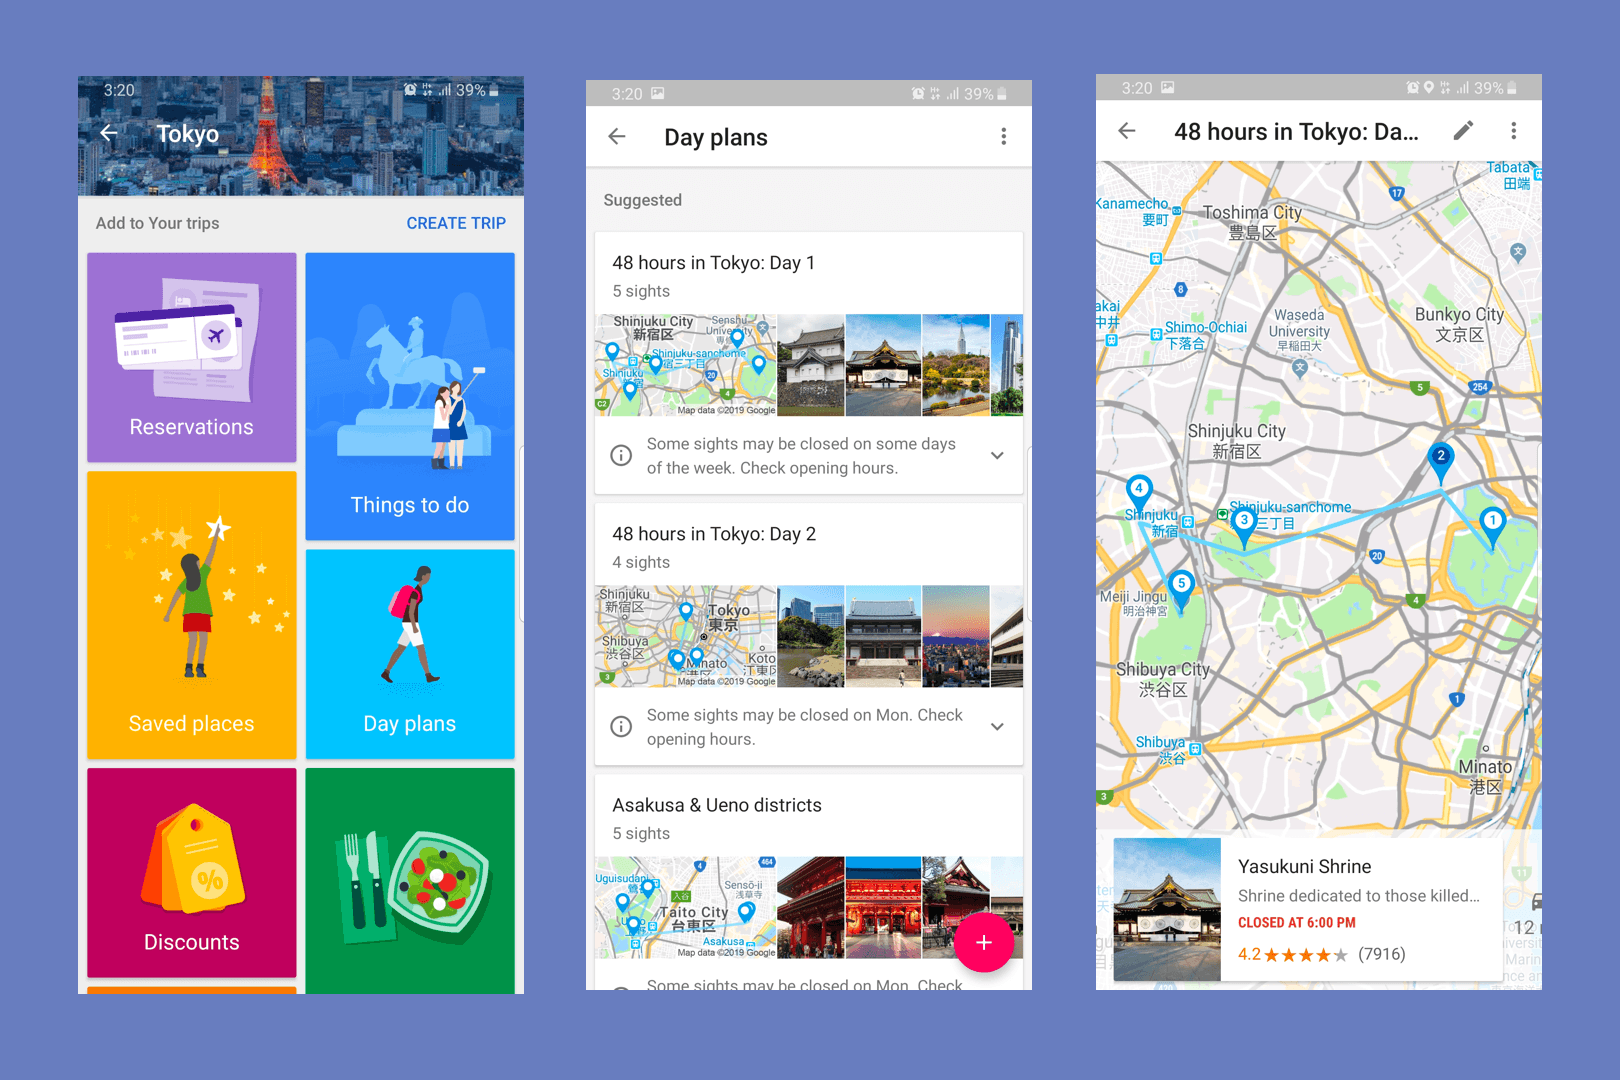 What is the best website or app to use for trip planning, and why